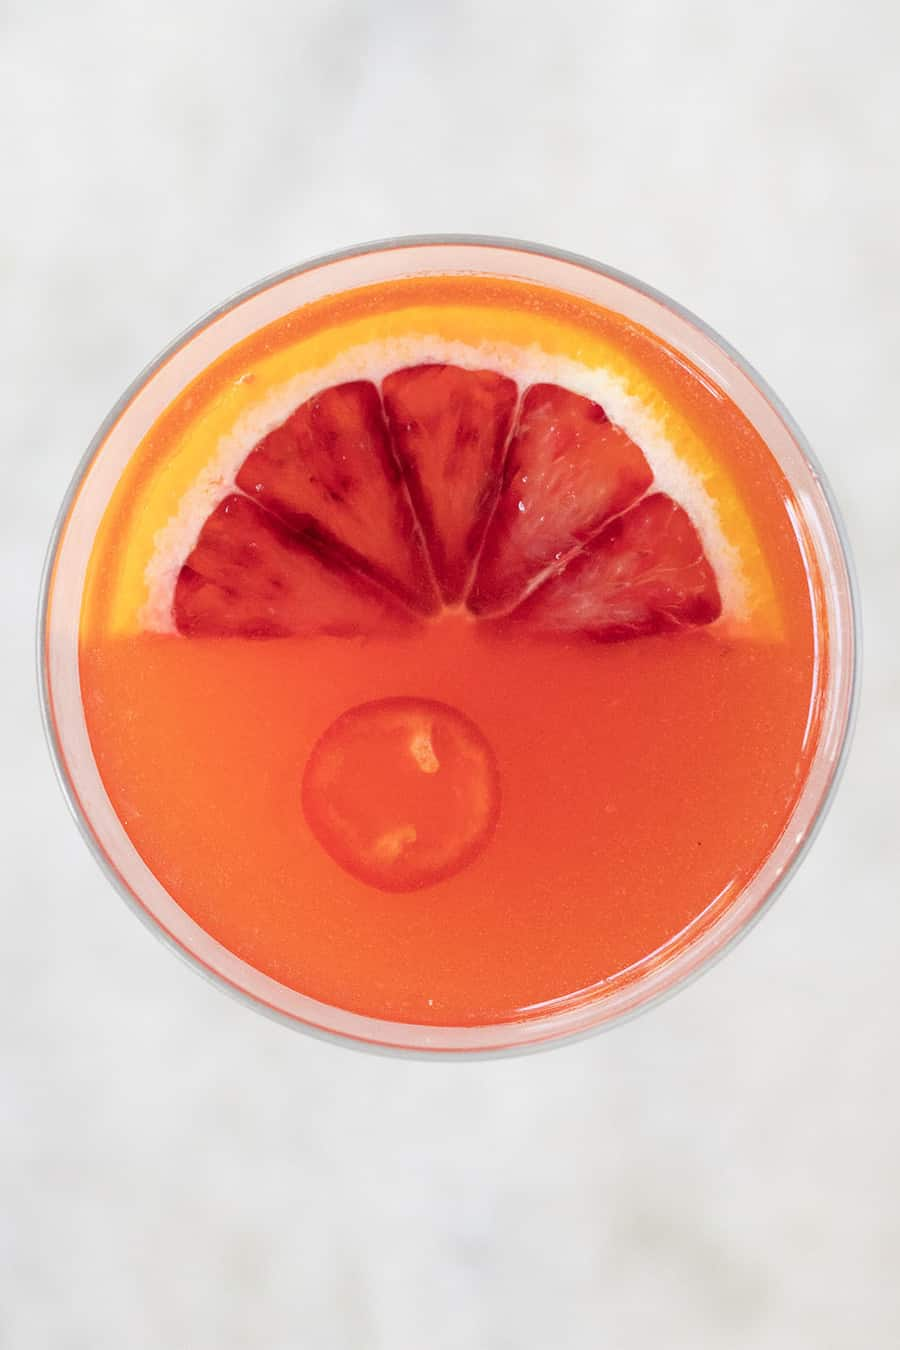 Spicy cocktail recipe with gin, blood orange and red pepper jello